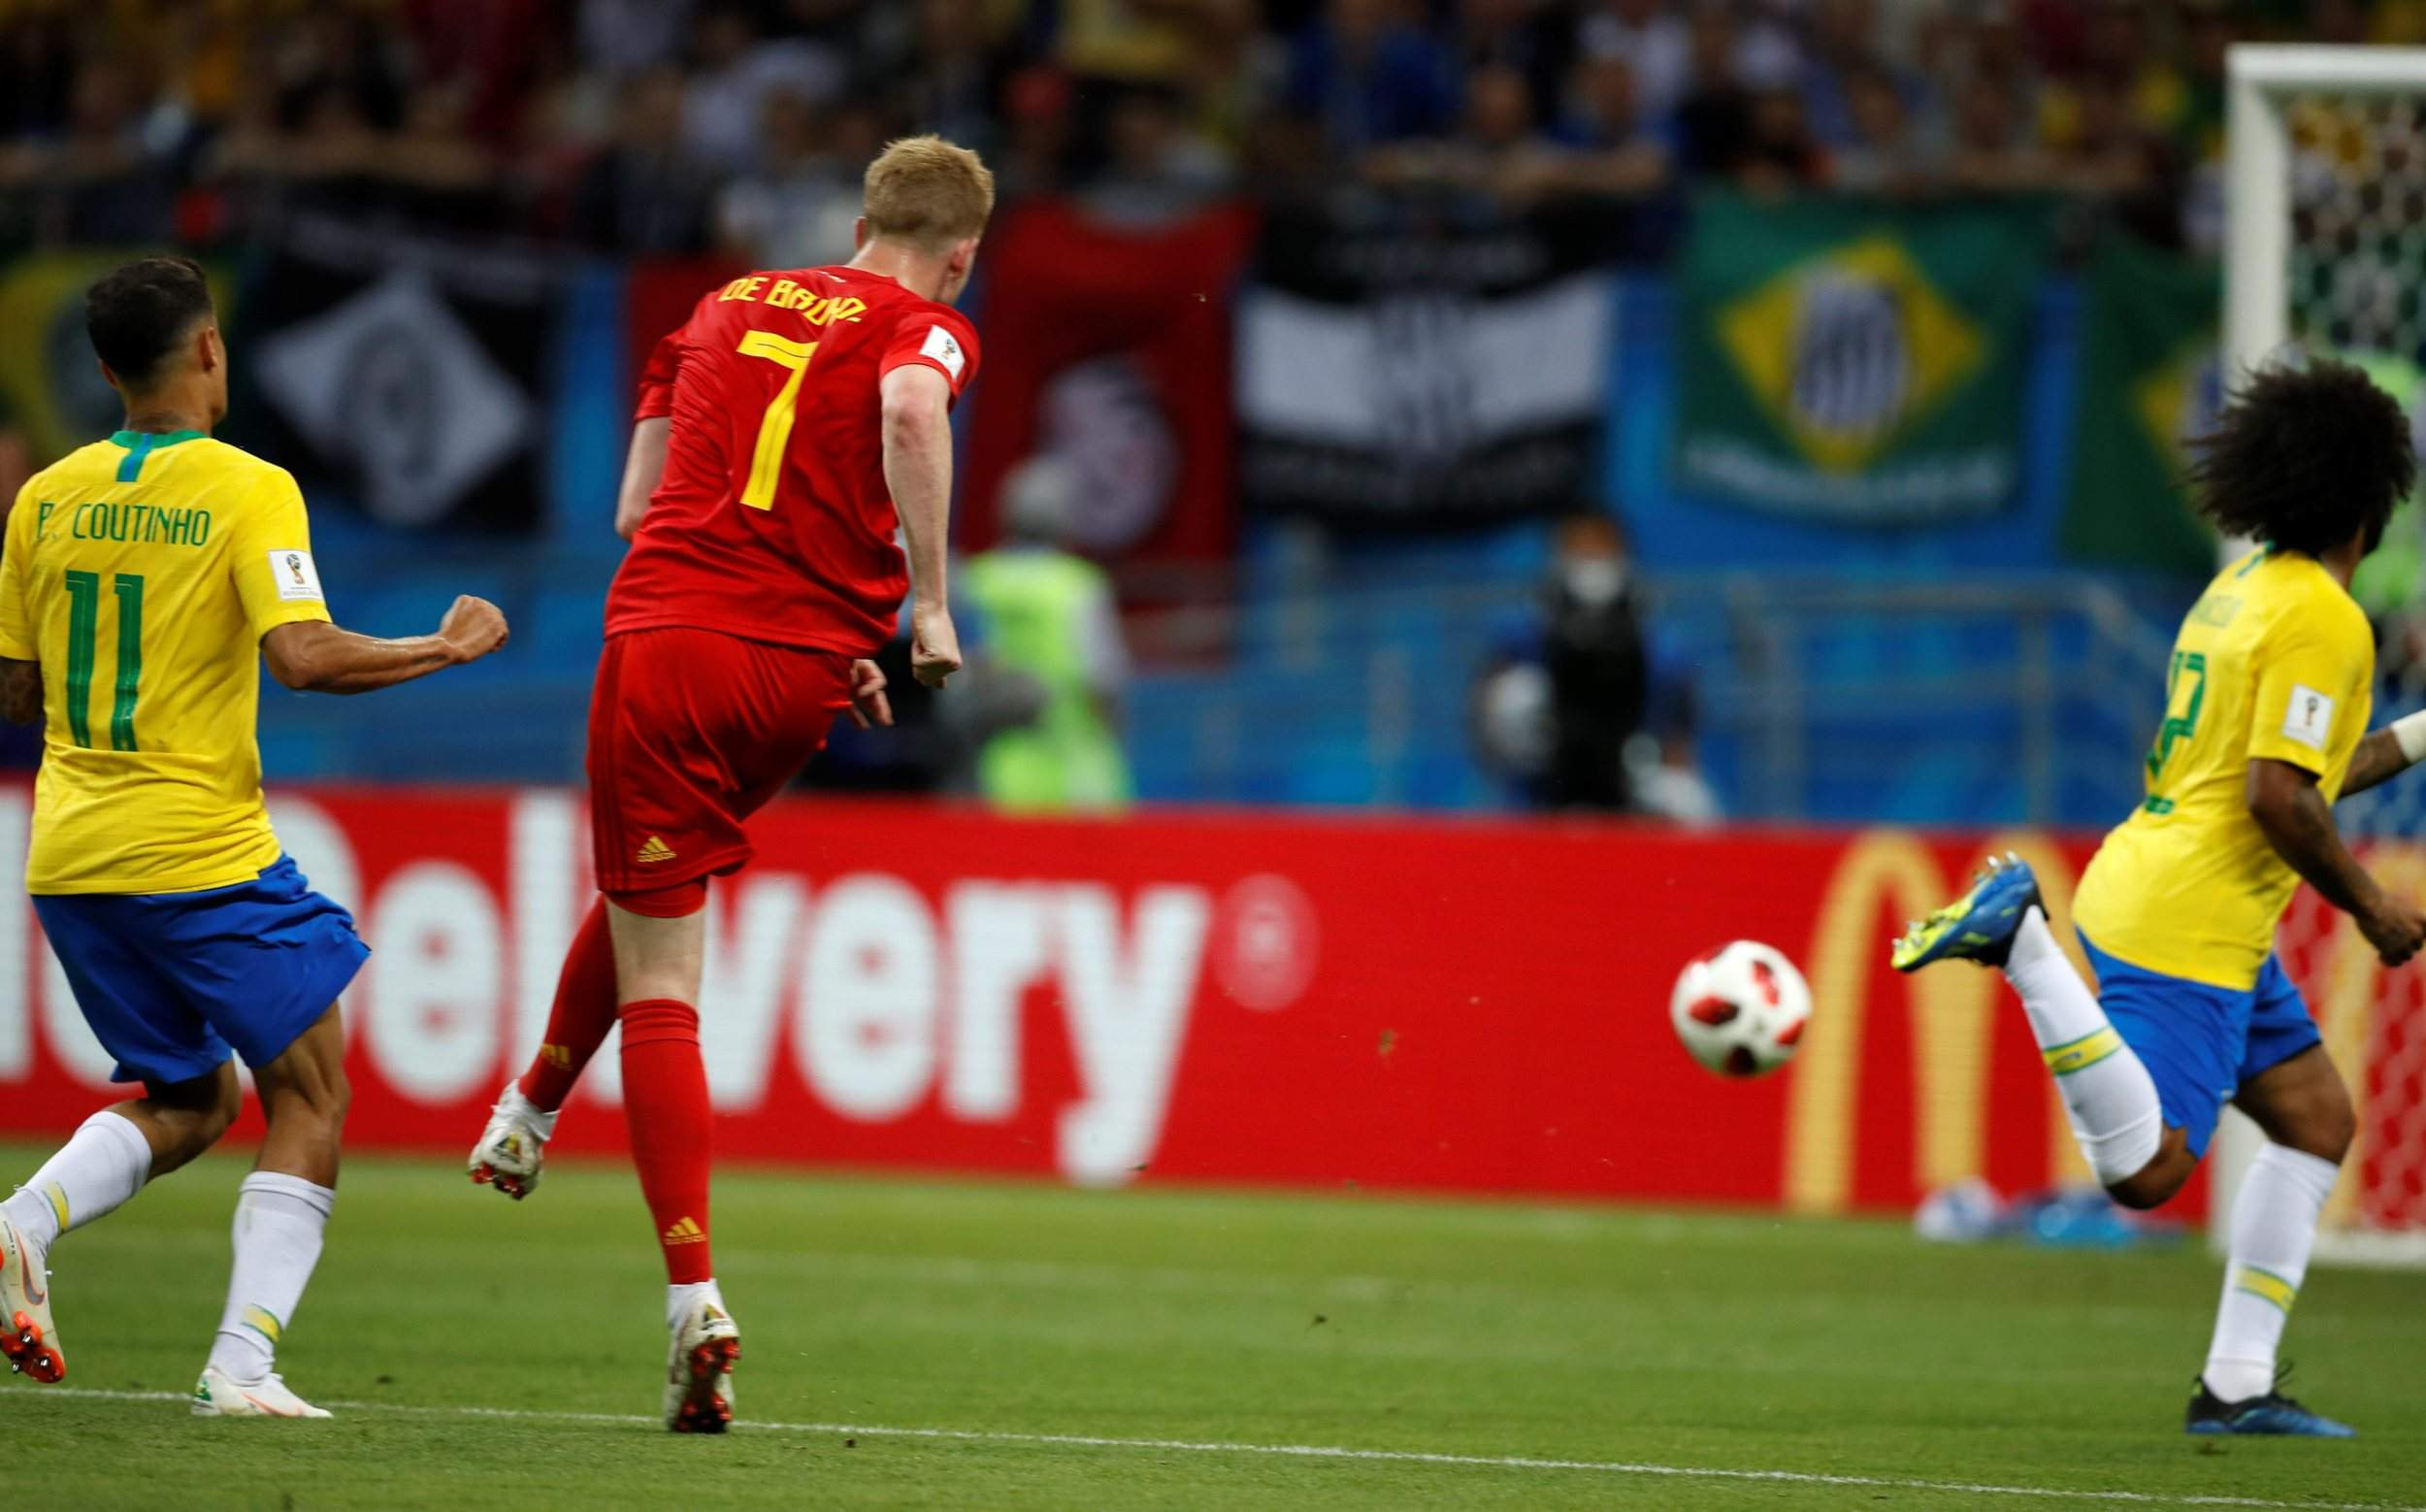 00bf58b3155 Belgium's Kevin De Bruyne scores his side's second goal during the  quarterfinal match between Brazil and Belgium at the World Cup in the Kazan  Arena on ...